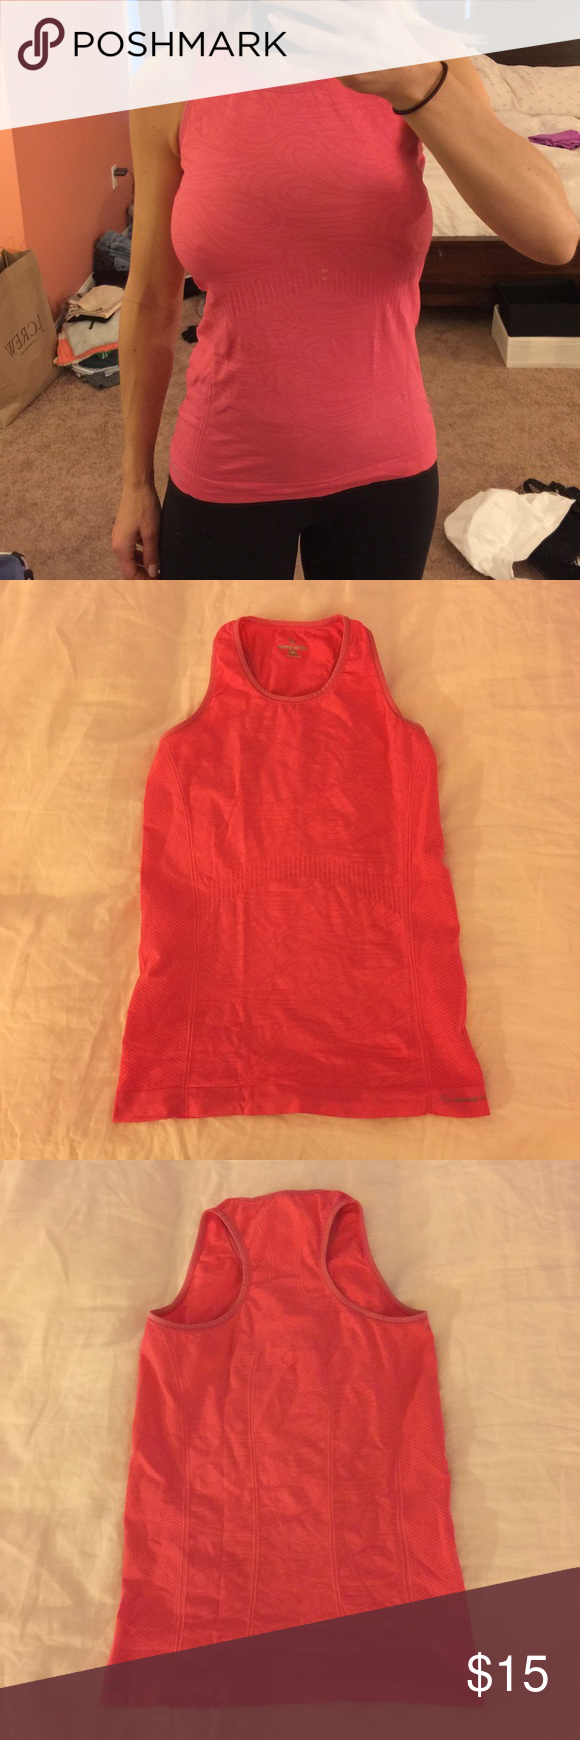 Moving Comfort Workout Top 🤸🏼♀️ Excellent condition, worn once or twice! Supportive, moisture wicking material with racerback. Bold pink color. Thanks for looking! Moving Comfort Tops Tank Tops